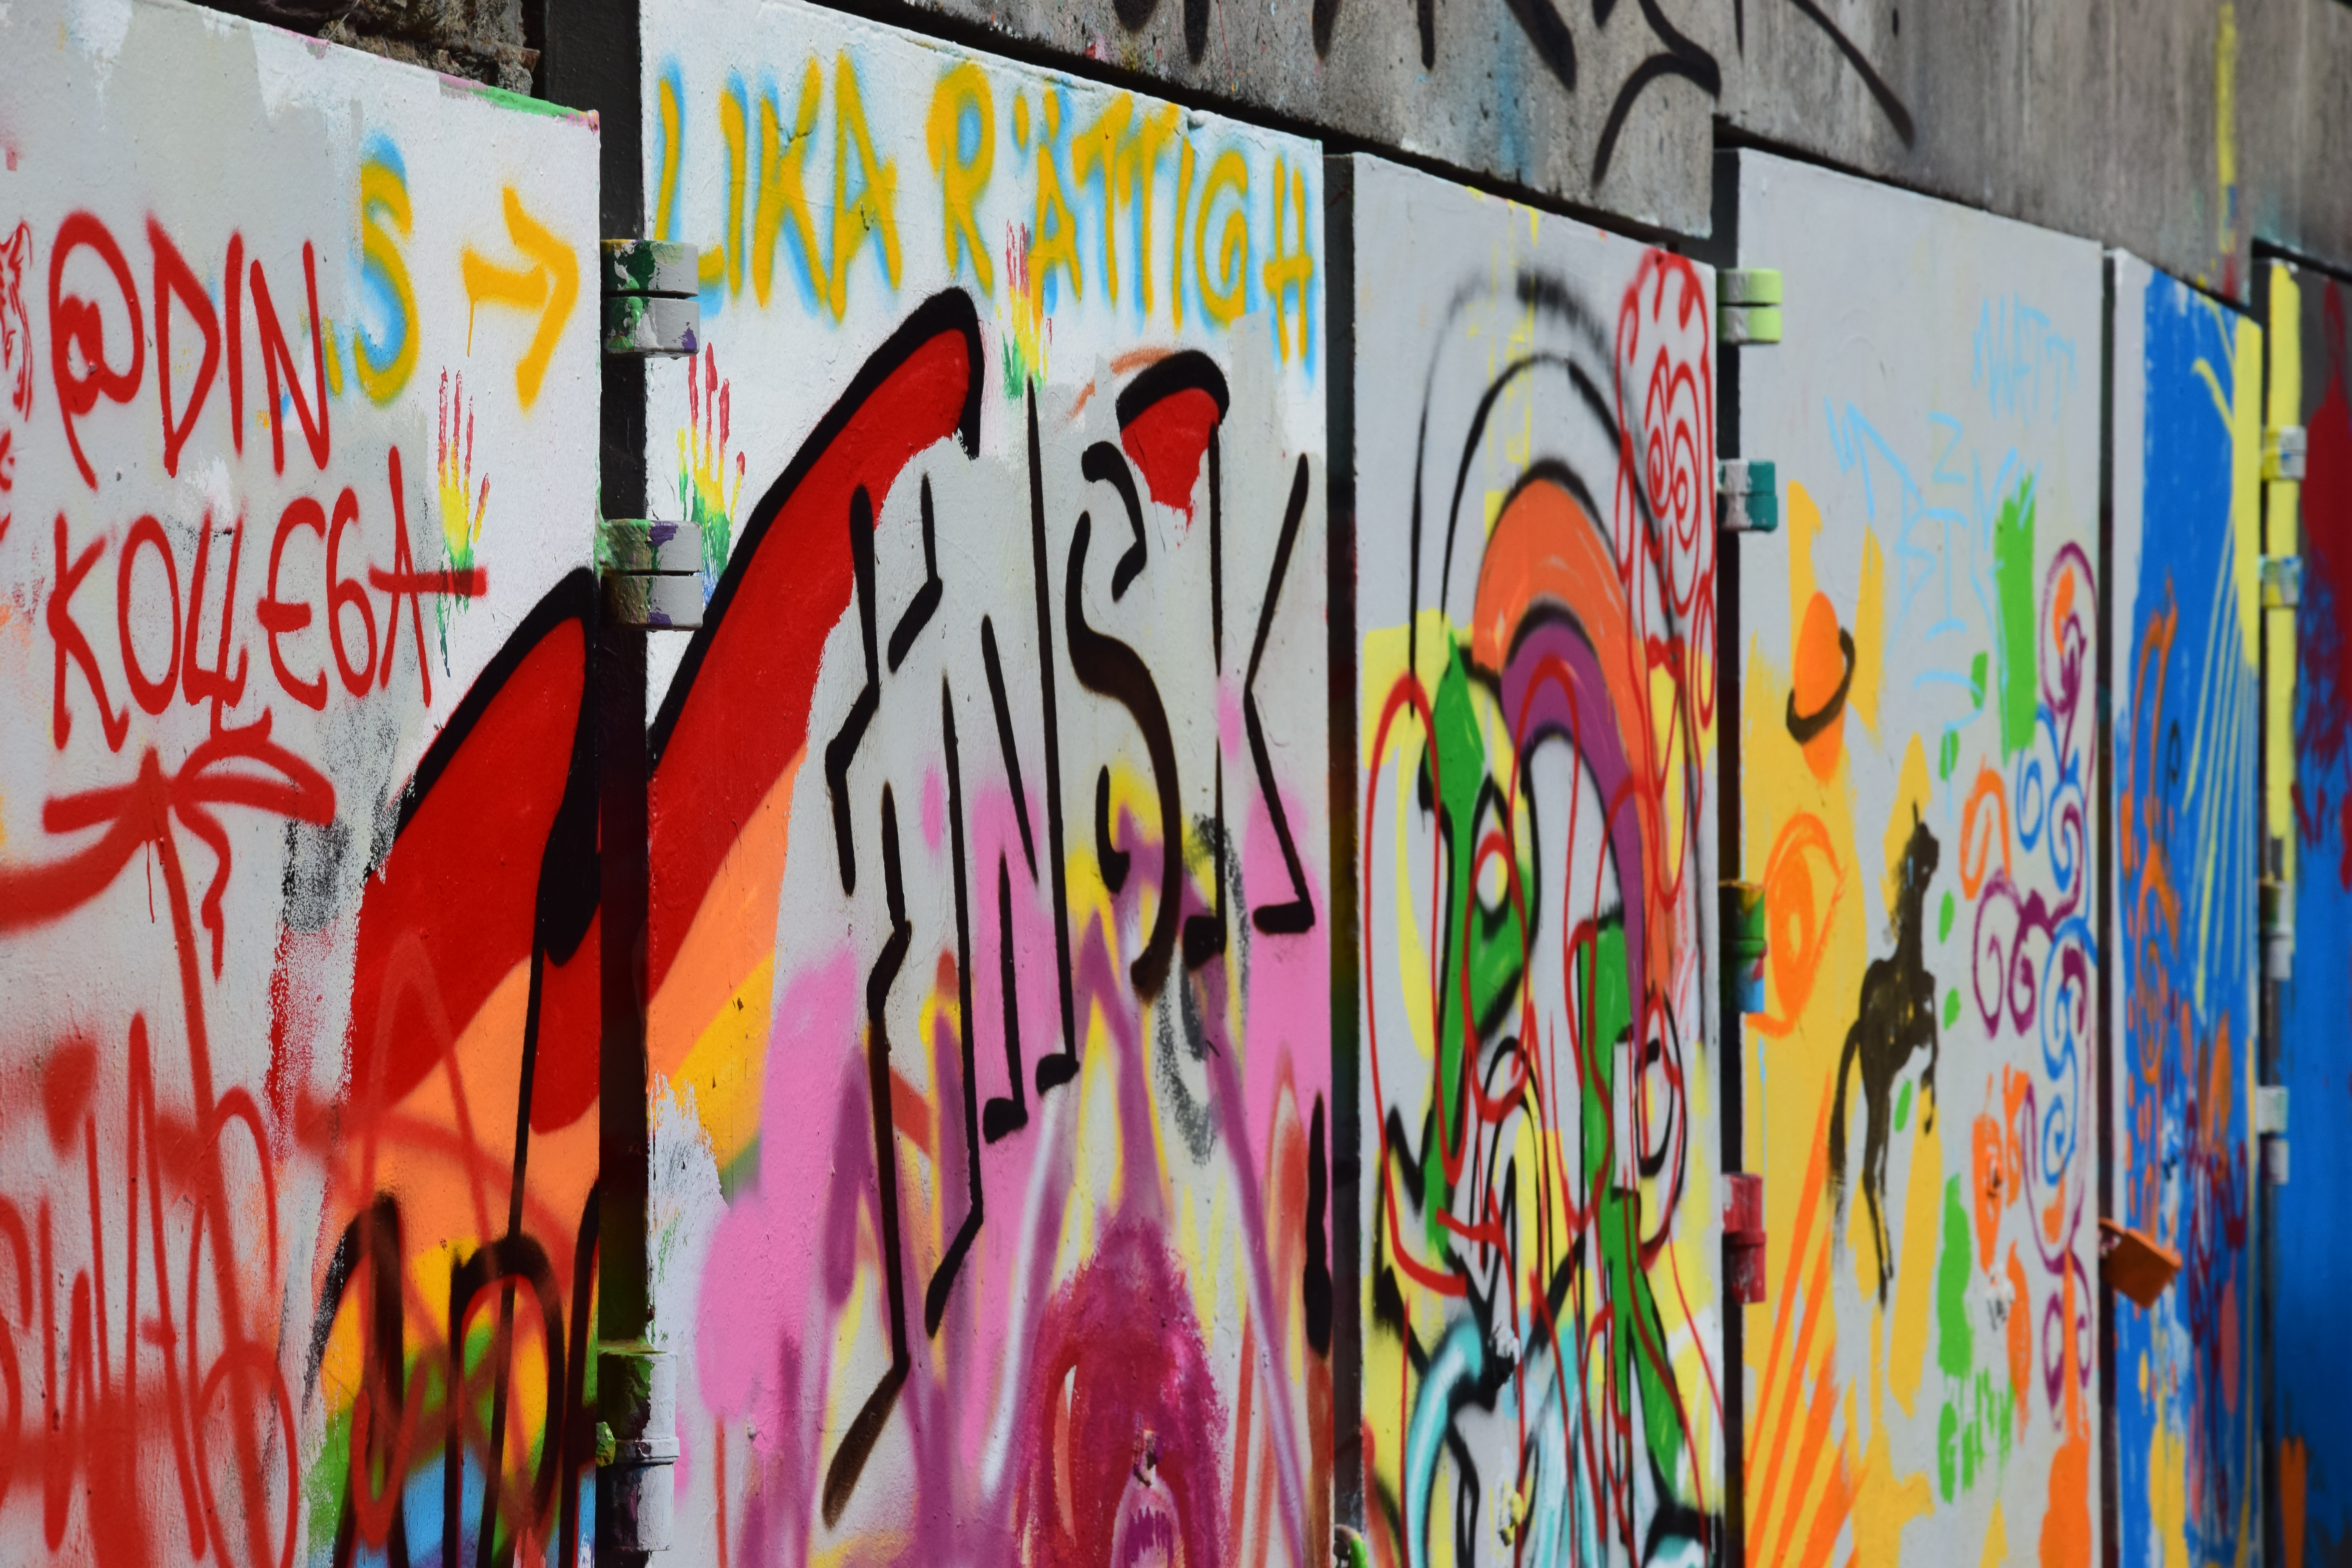 multicolored graffiti on gray doors